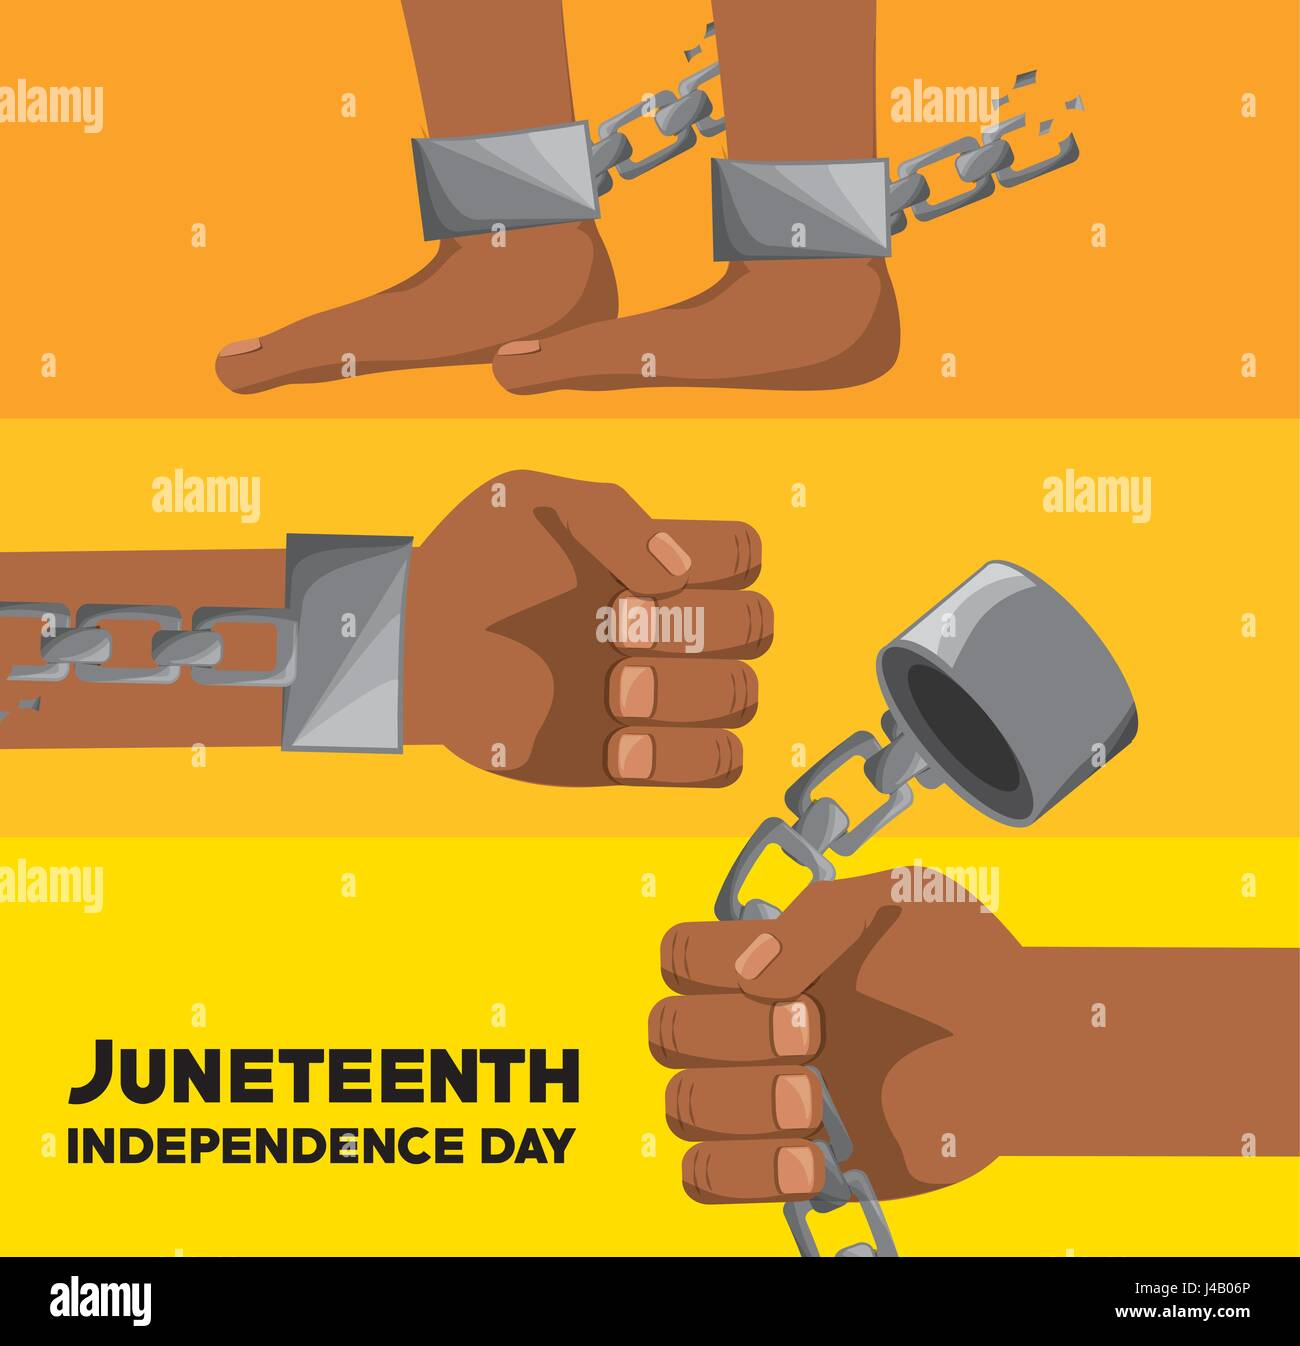 hands and feet with chain to celebrate juneteenth independence - Stock Vector